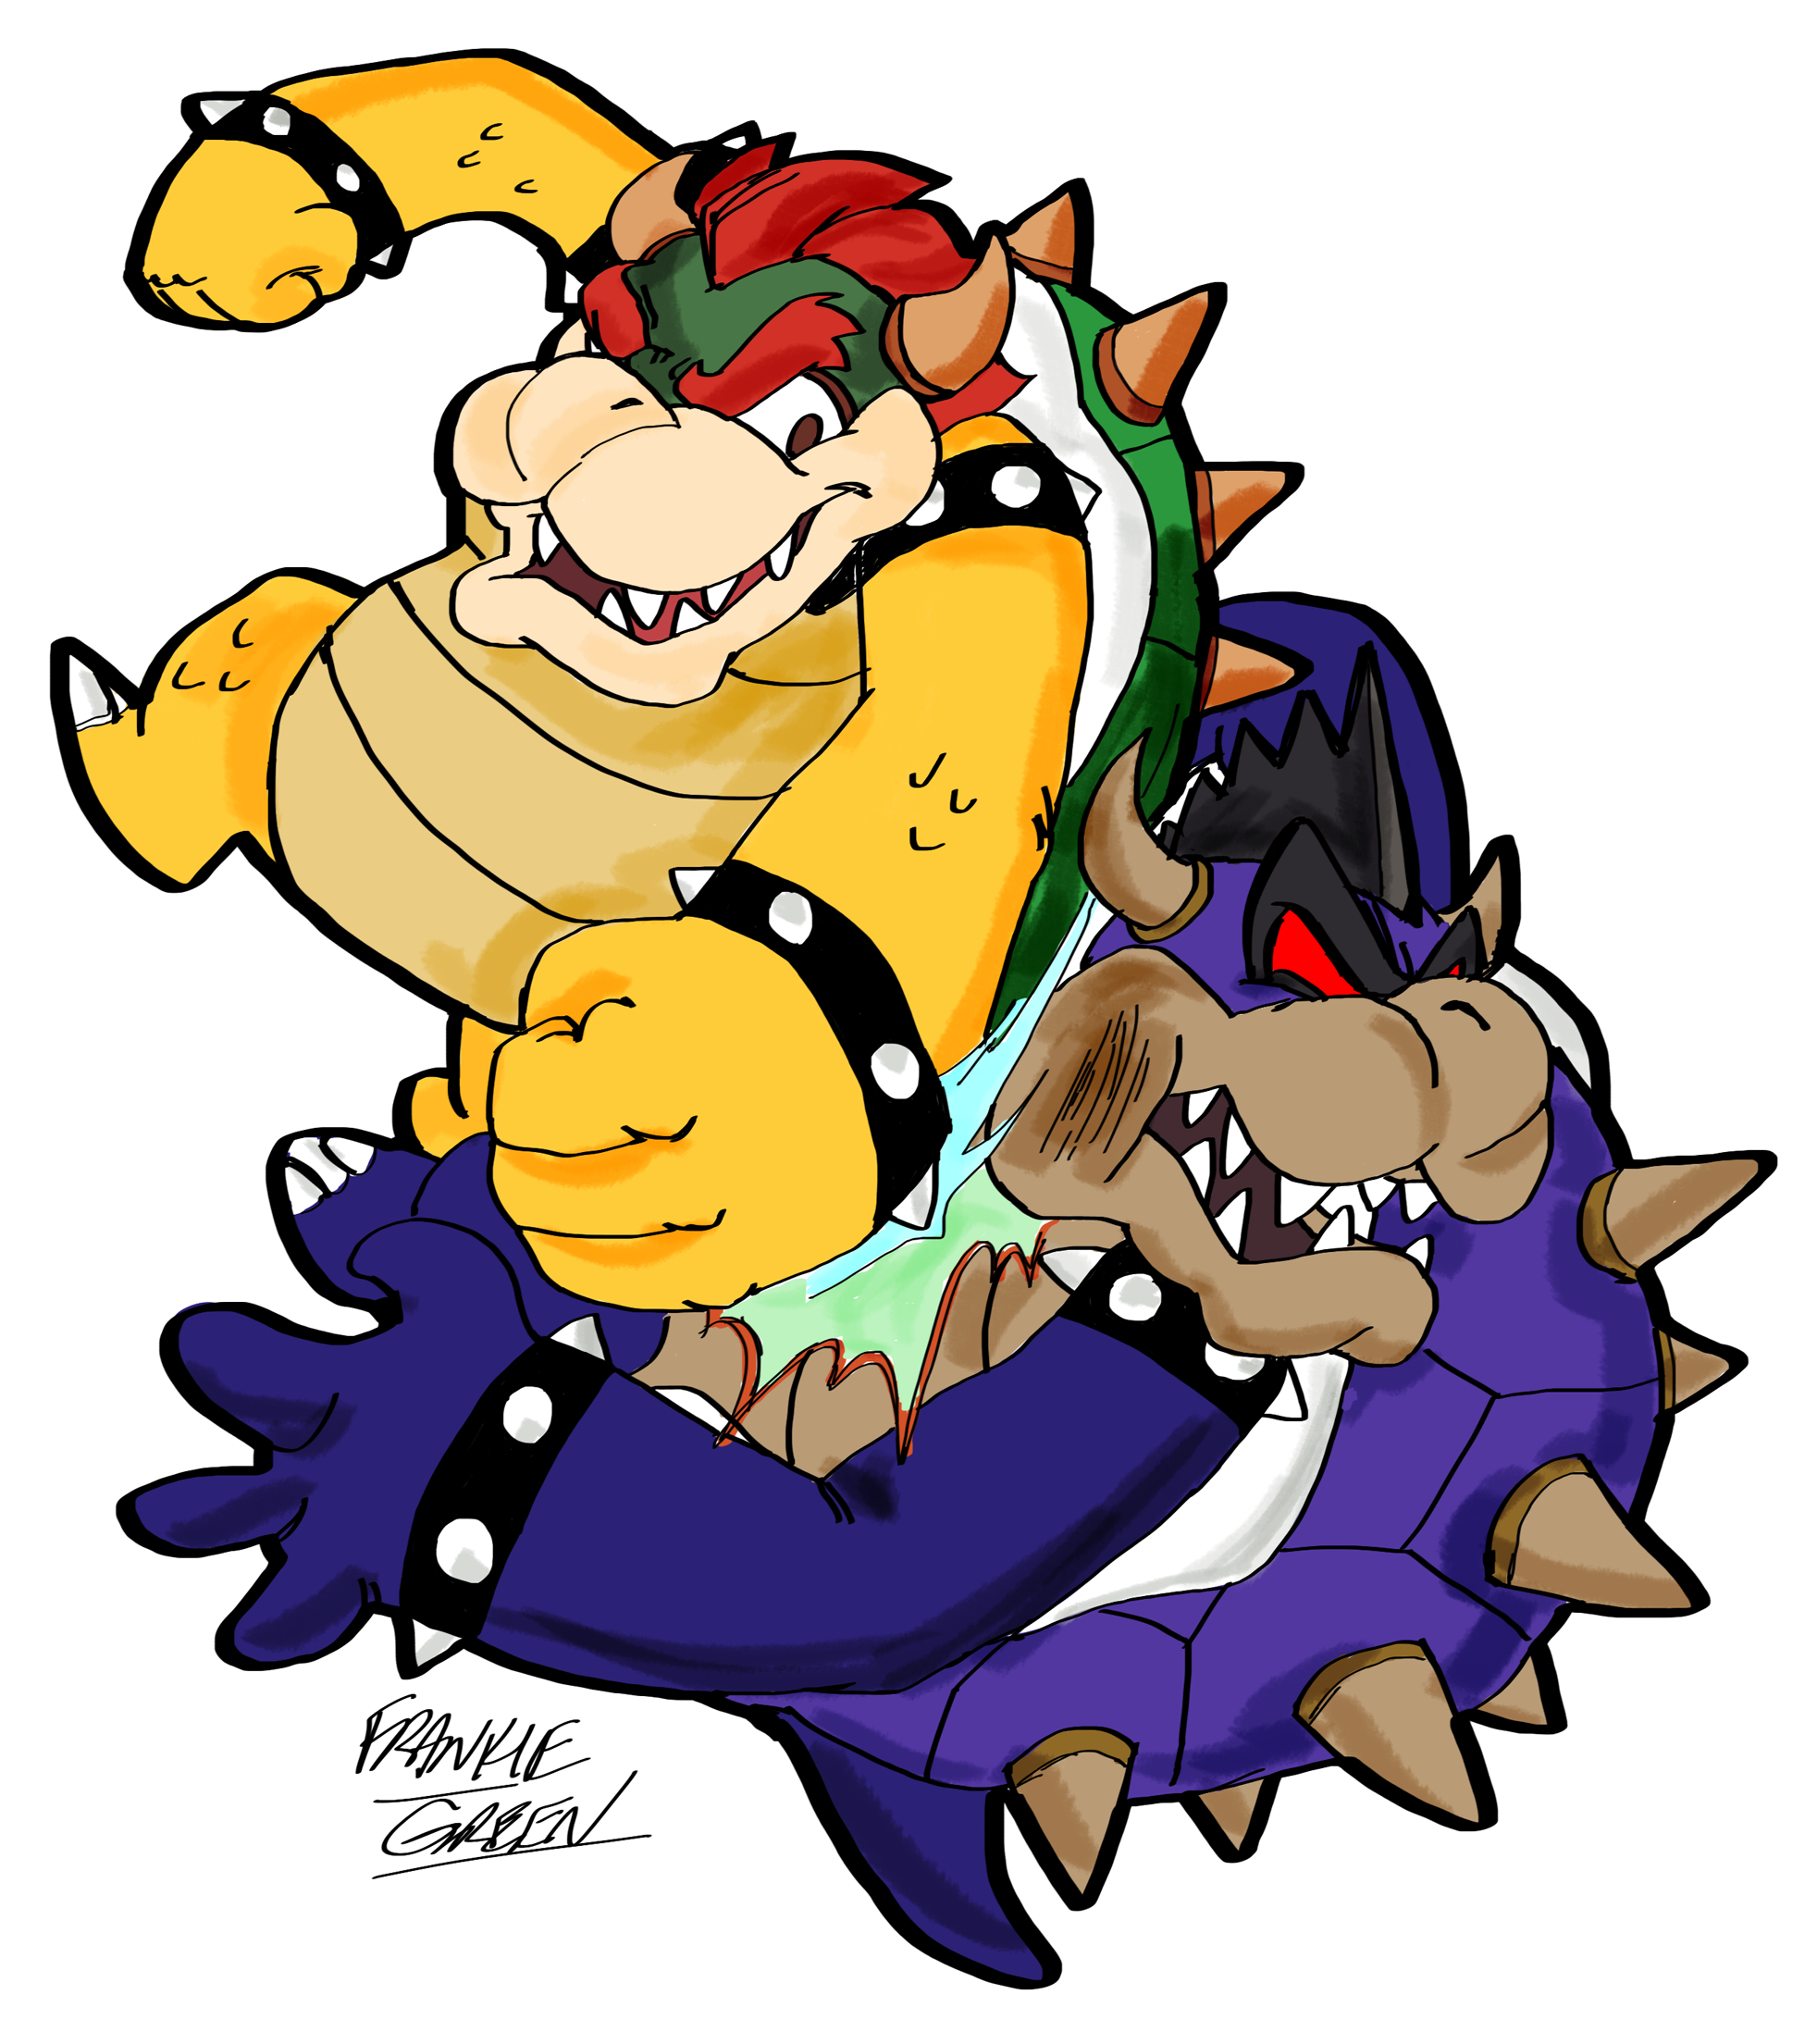 Bowser vs. Dark Bowser